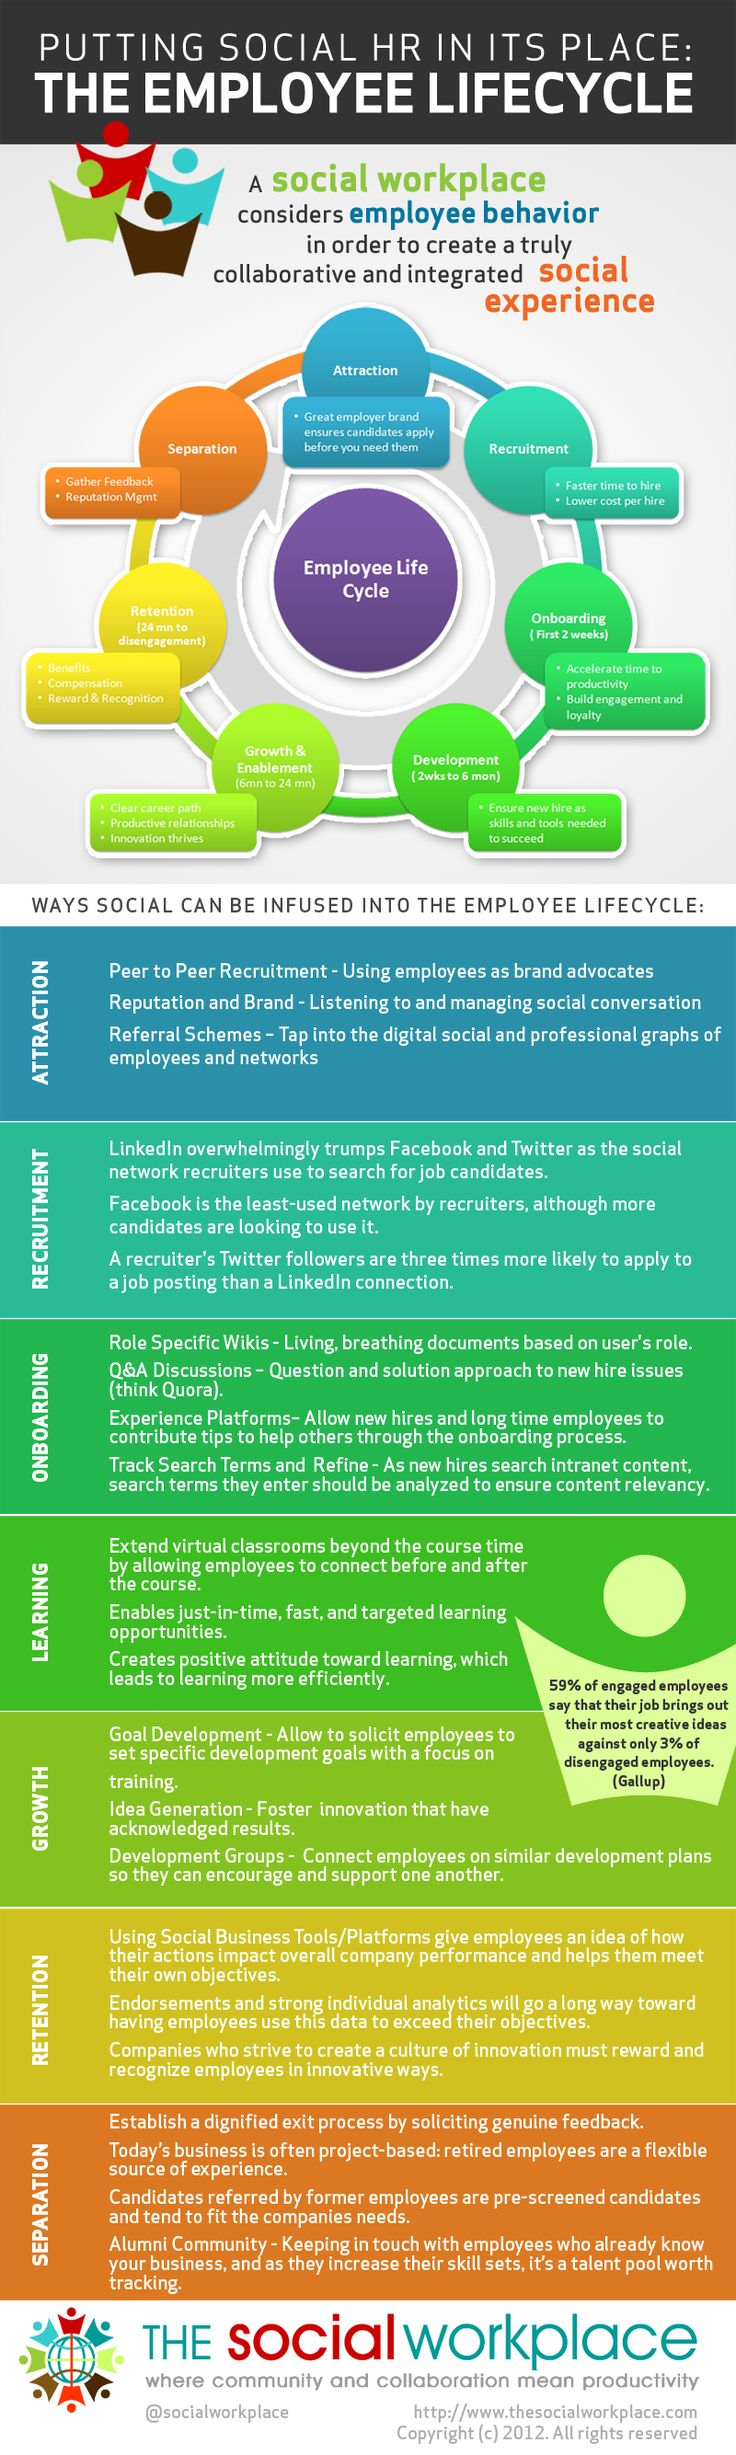 Putting Social HR in Its Place: the Employee Lifecycle in your HR Tech system. I use lots of this in my @cfactor Works HRIS